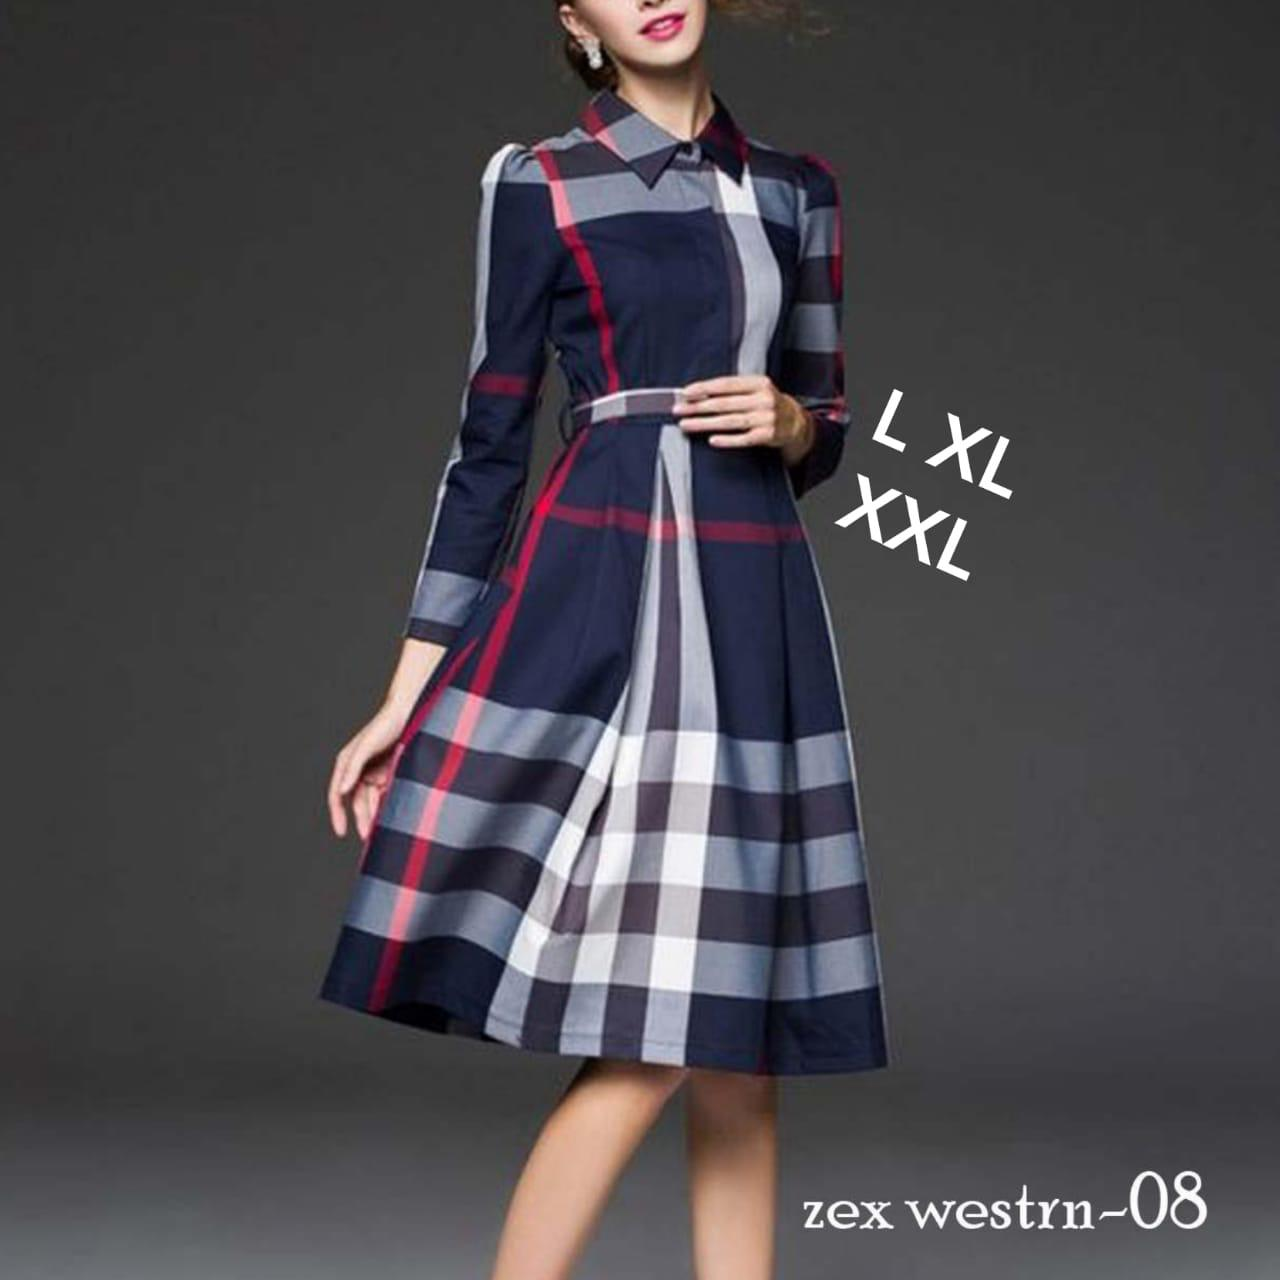 New Western Wear Vol 3 collection 1